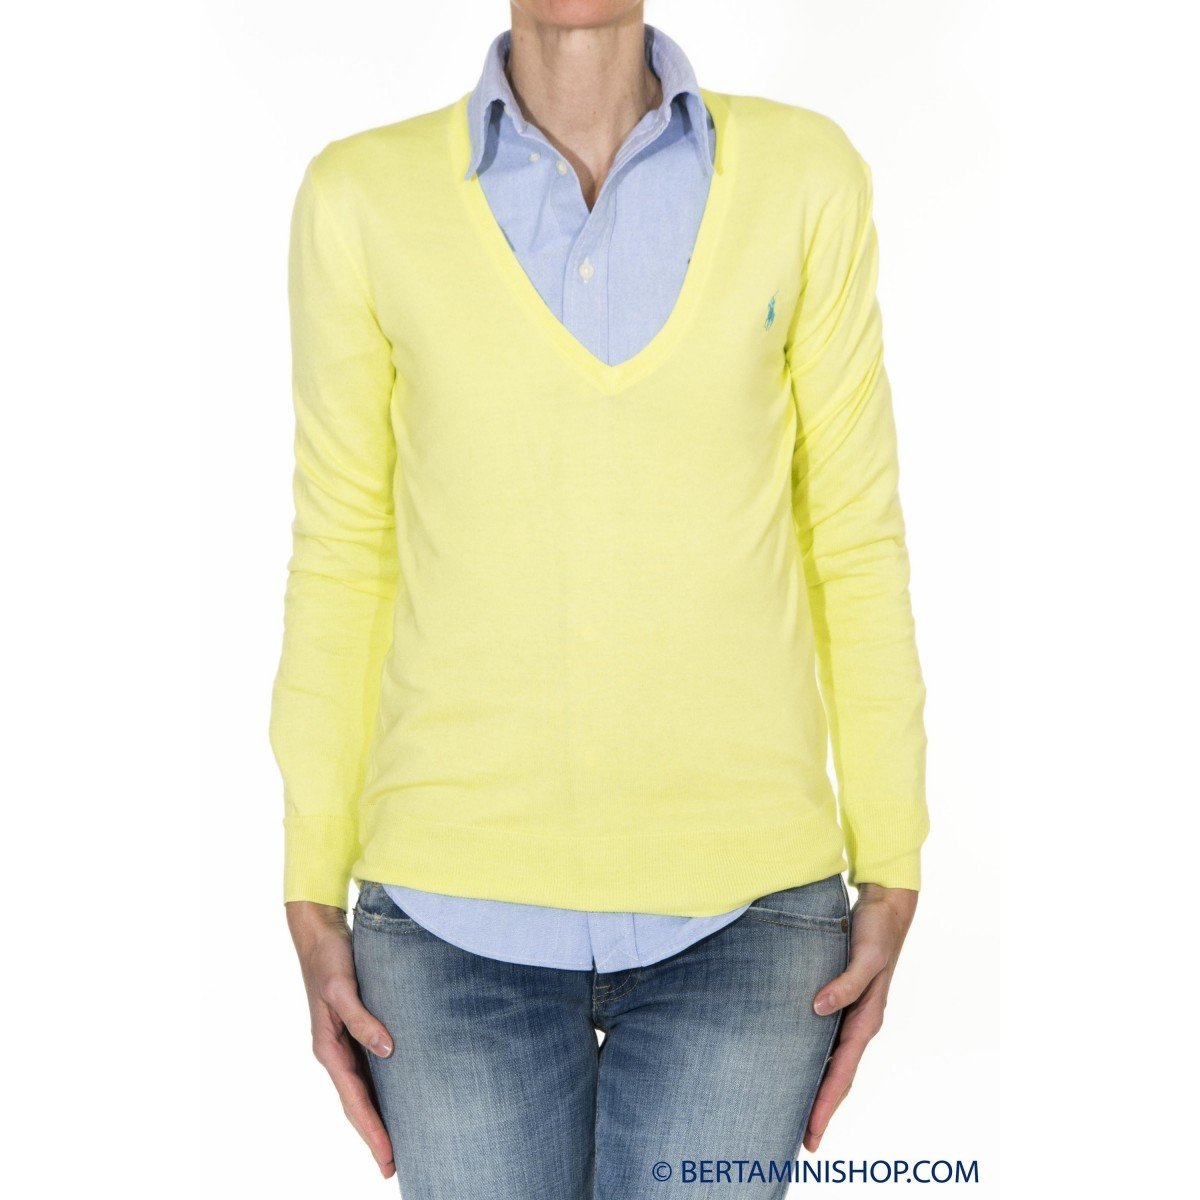 Sweater Ralph Lauren Damen - V39Ih635Bh635 B7H10 - Lime